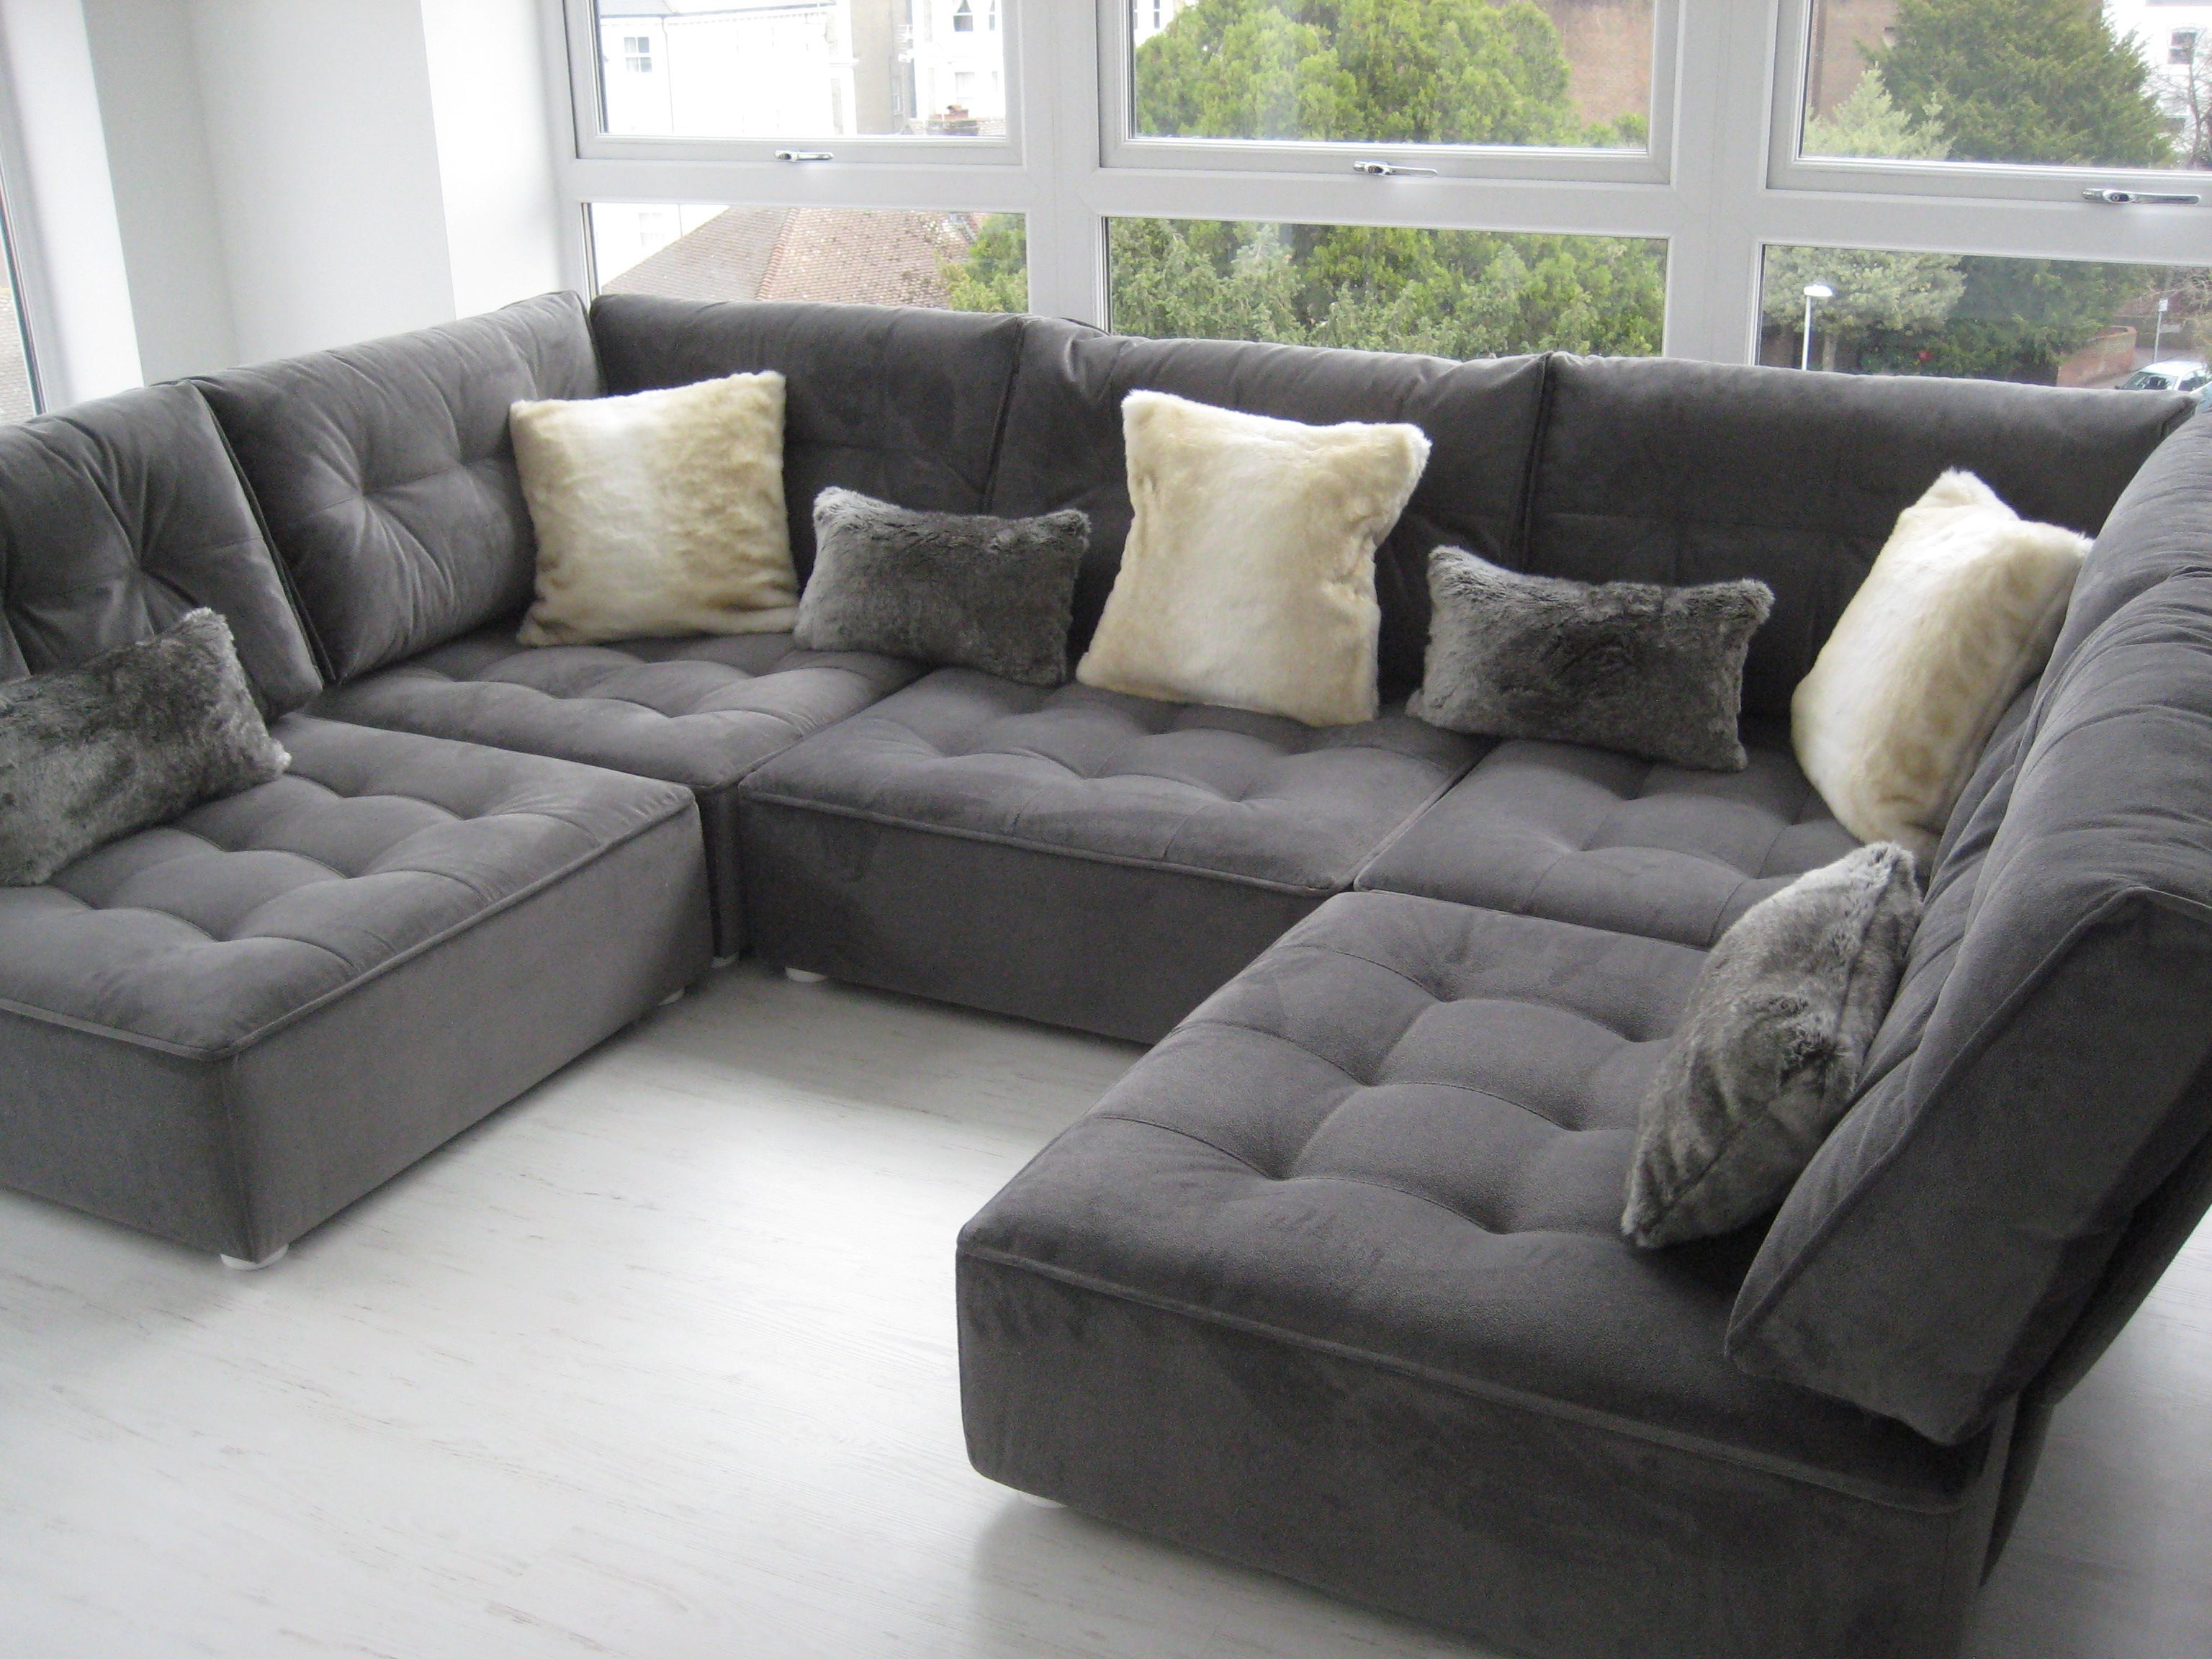 Lush Flexible Modular Open Plan Space Lounging The Fabric Is Houles Dandy Snakeskin Fabric With F Modern Sofa Living Room Relaxation Room Built In Sofa